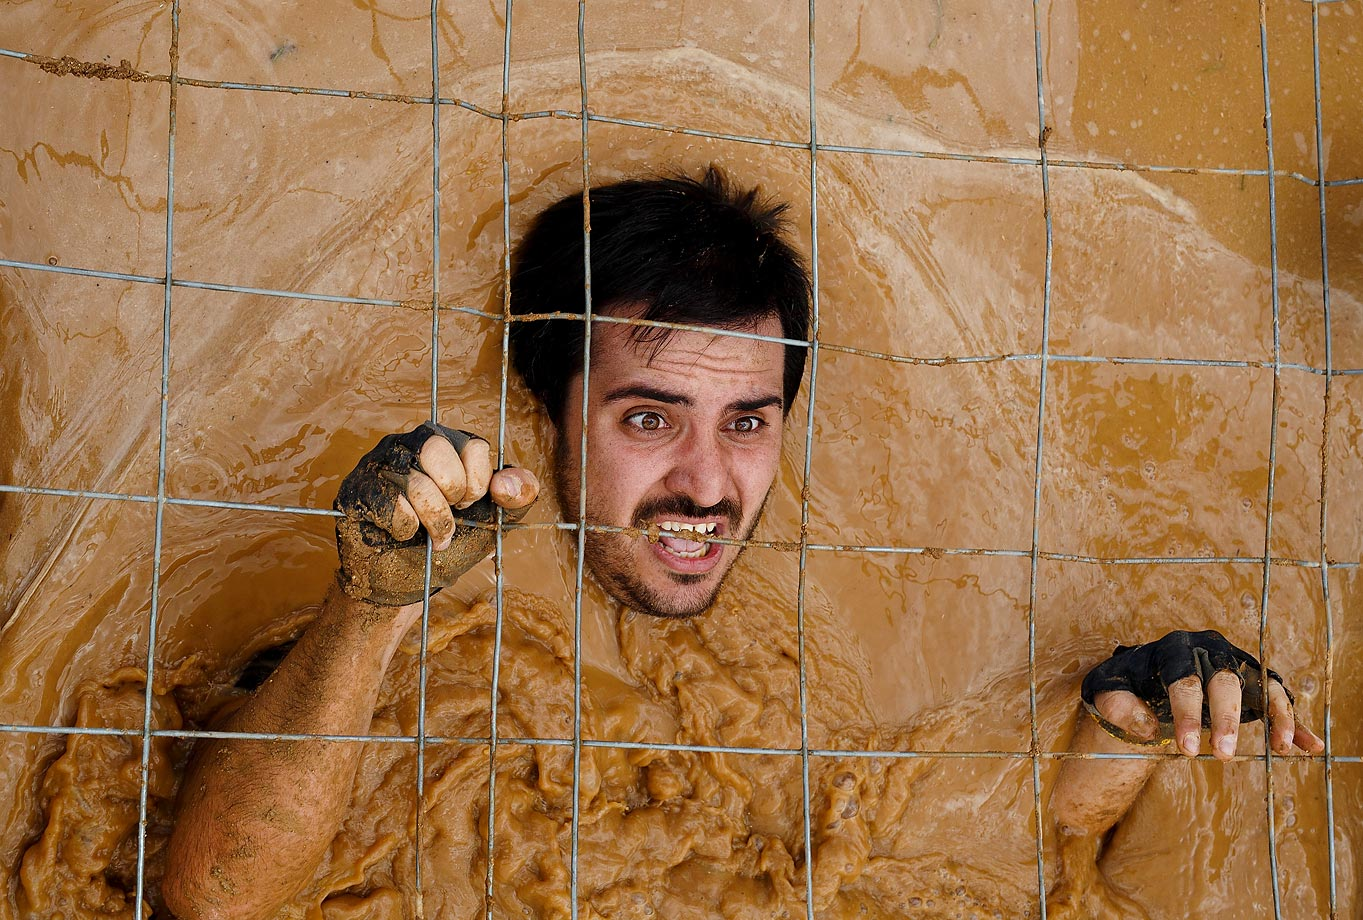 A competitor passes under a fence through the water during the first Belik obstacle course race, held near Guadalajara, Spain.